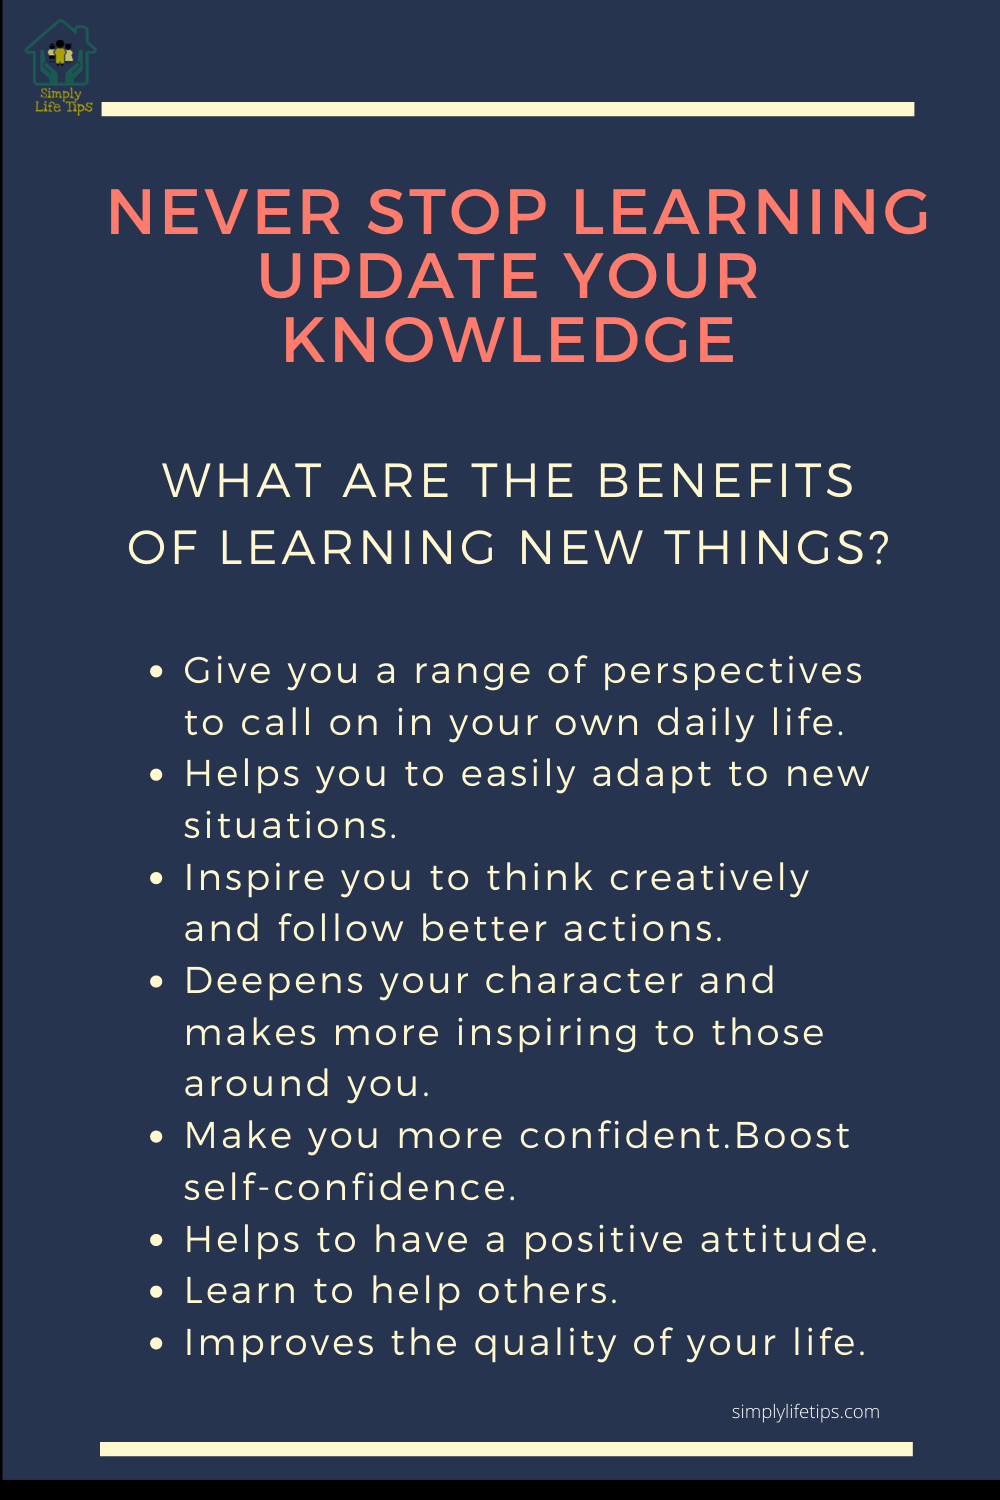 Benefits of learning new things